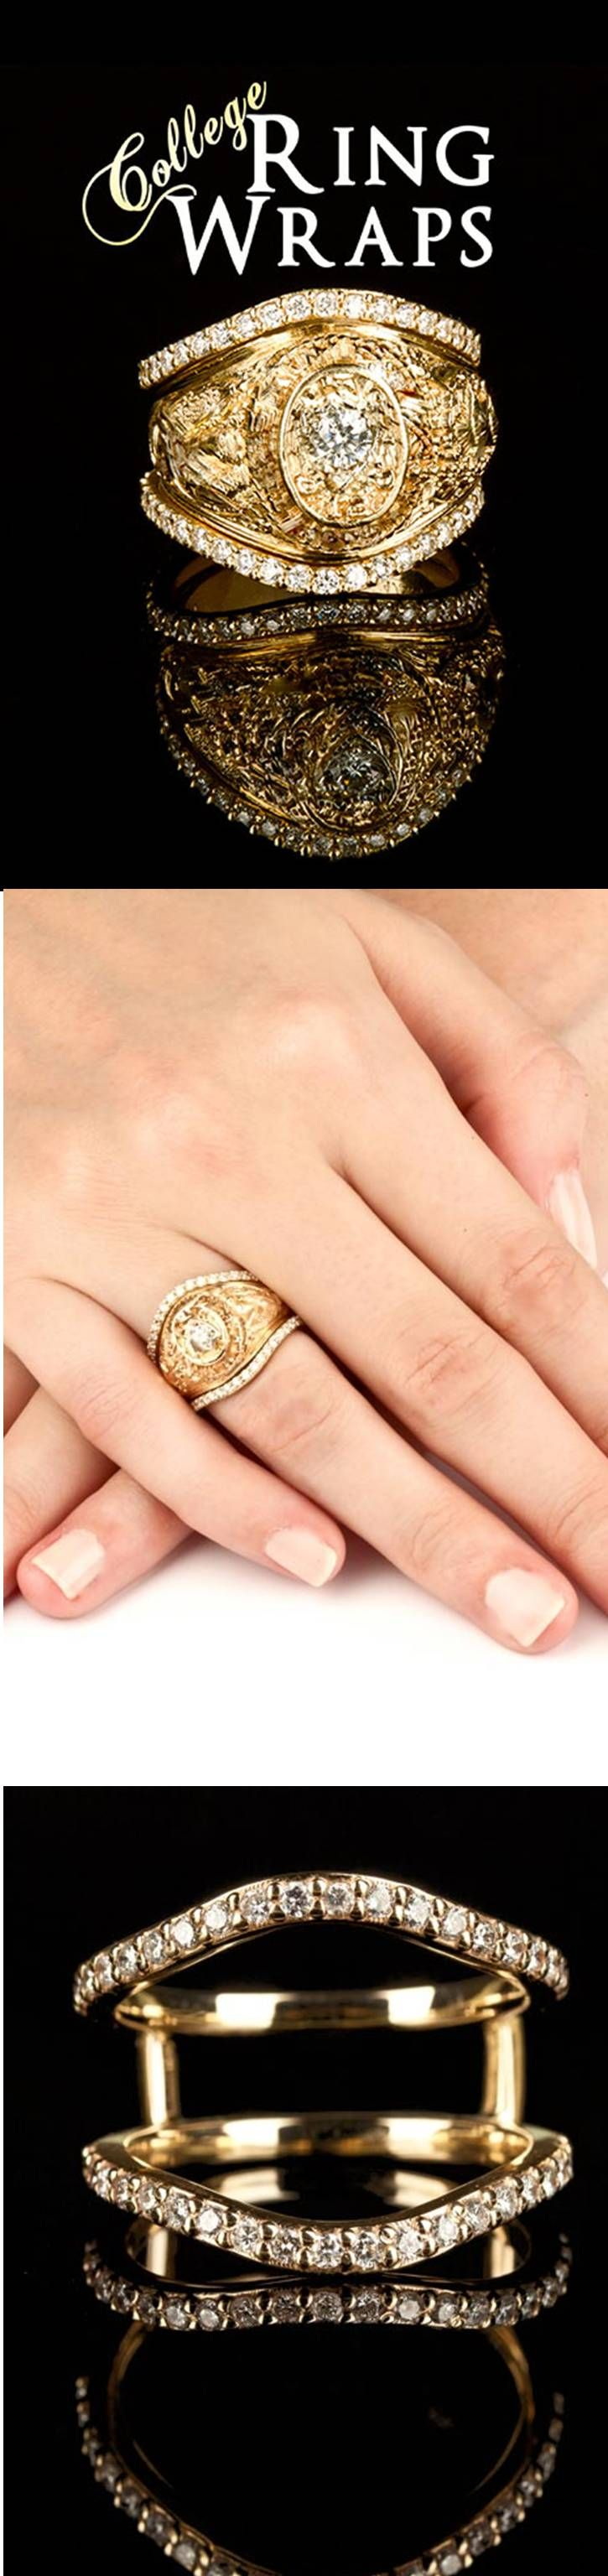 sku ring always pref jewlr forever medical dim graduation ceramic rings uwo gifts view men school black ss nightfall s overlay